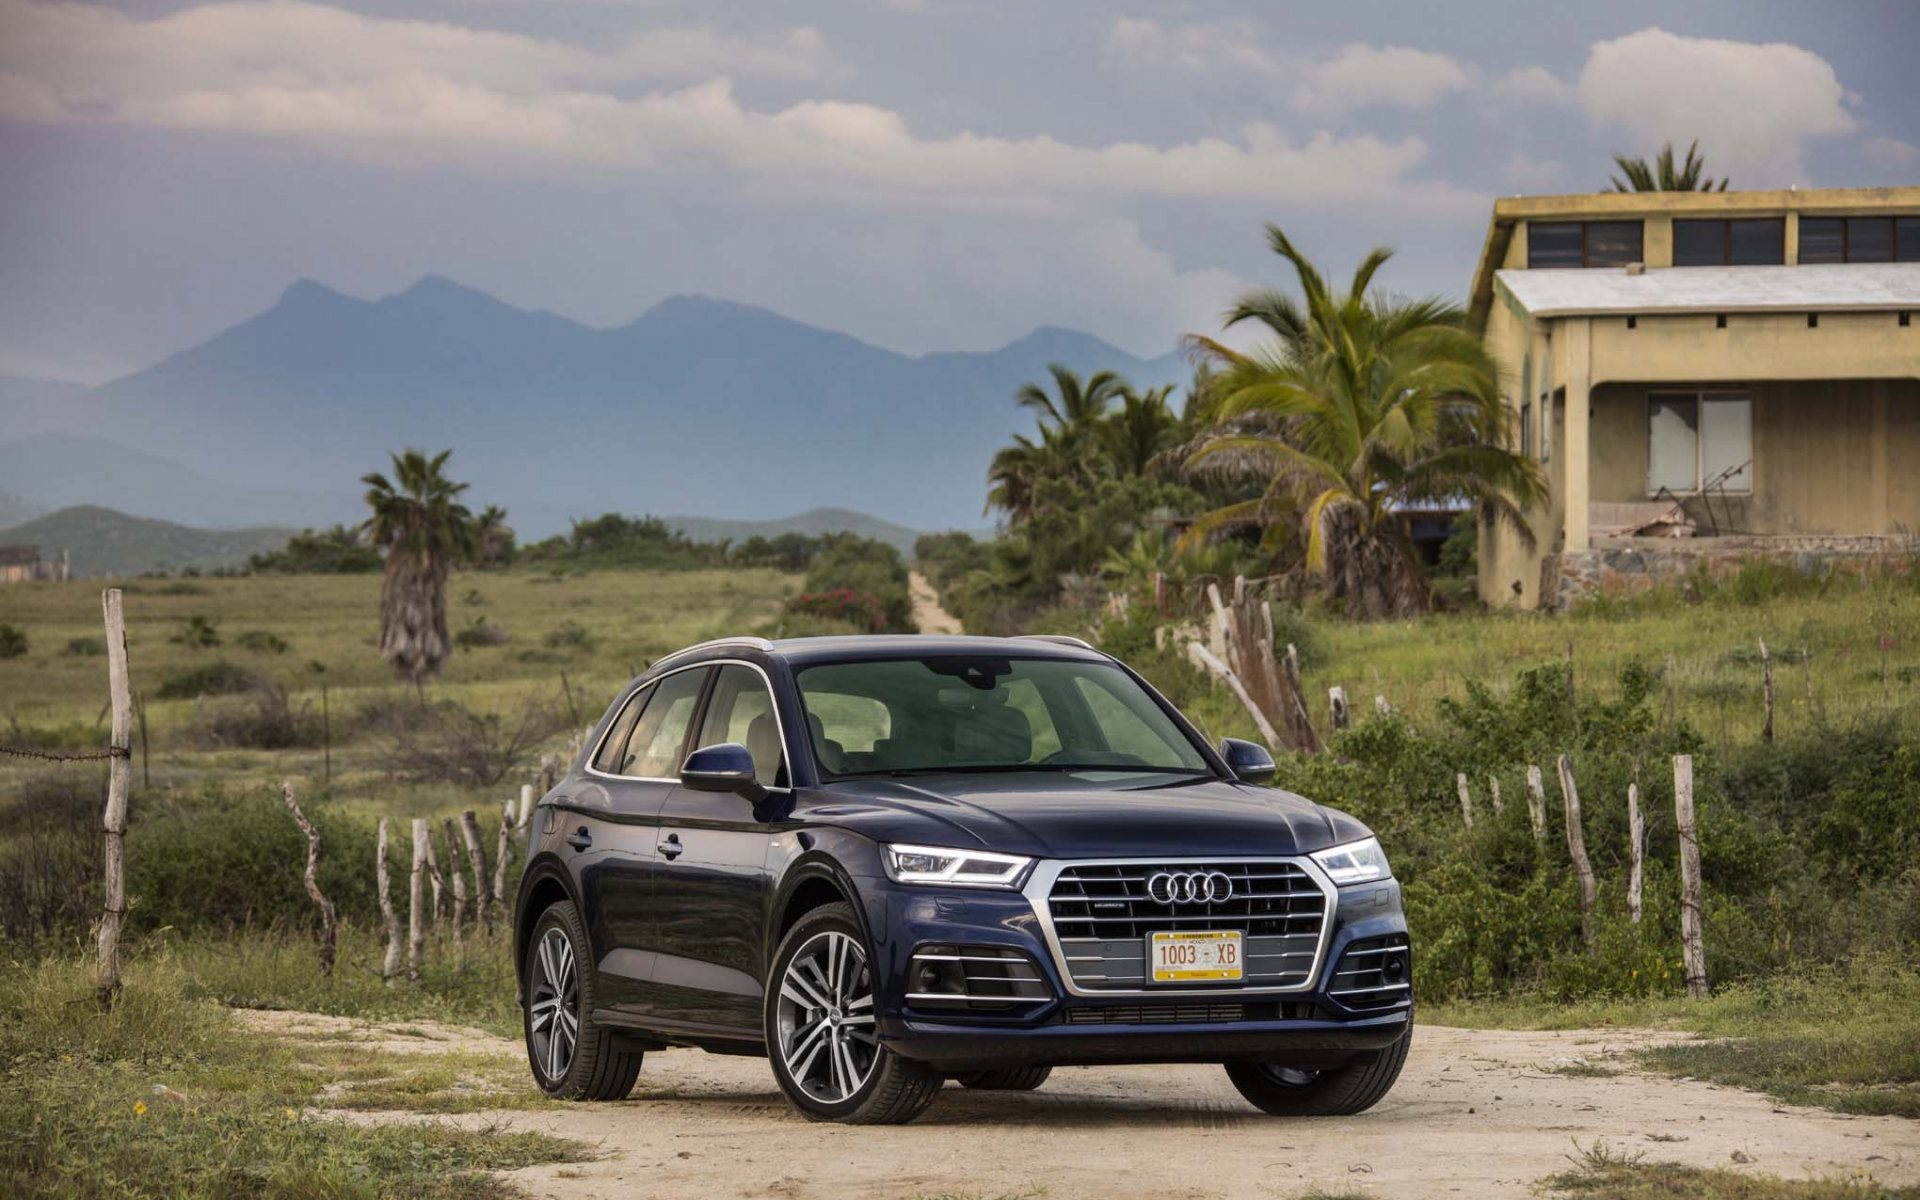 2018 audi q5 wallpaper background